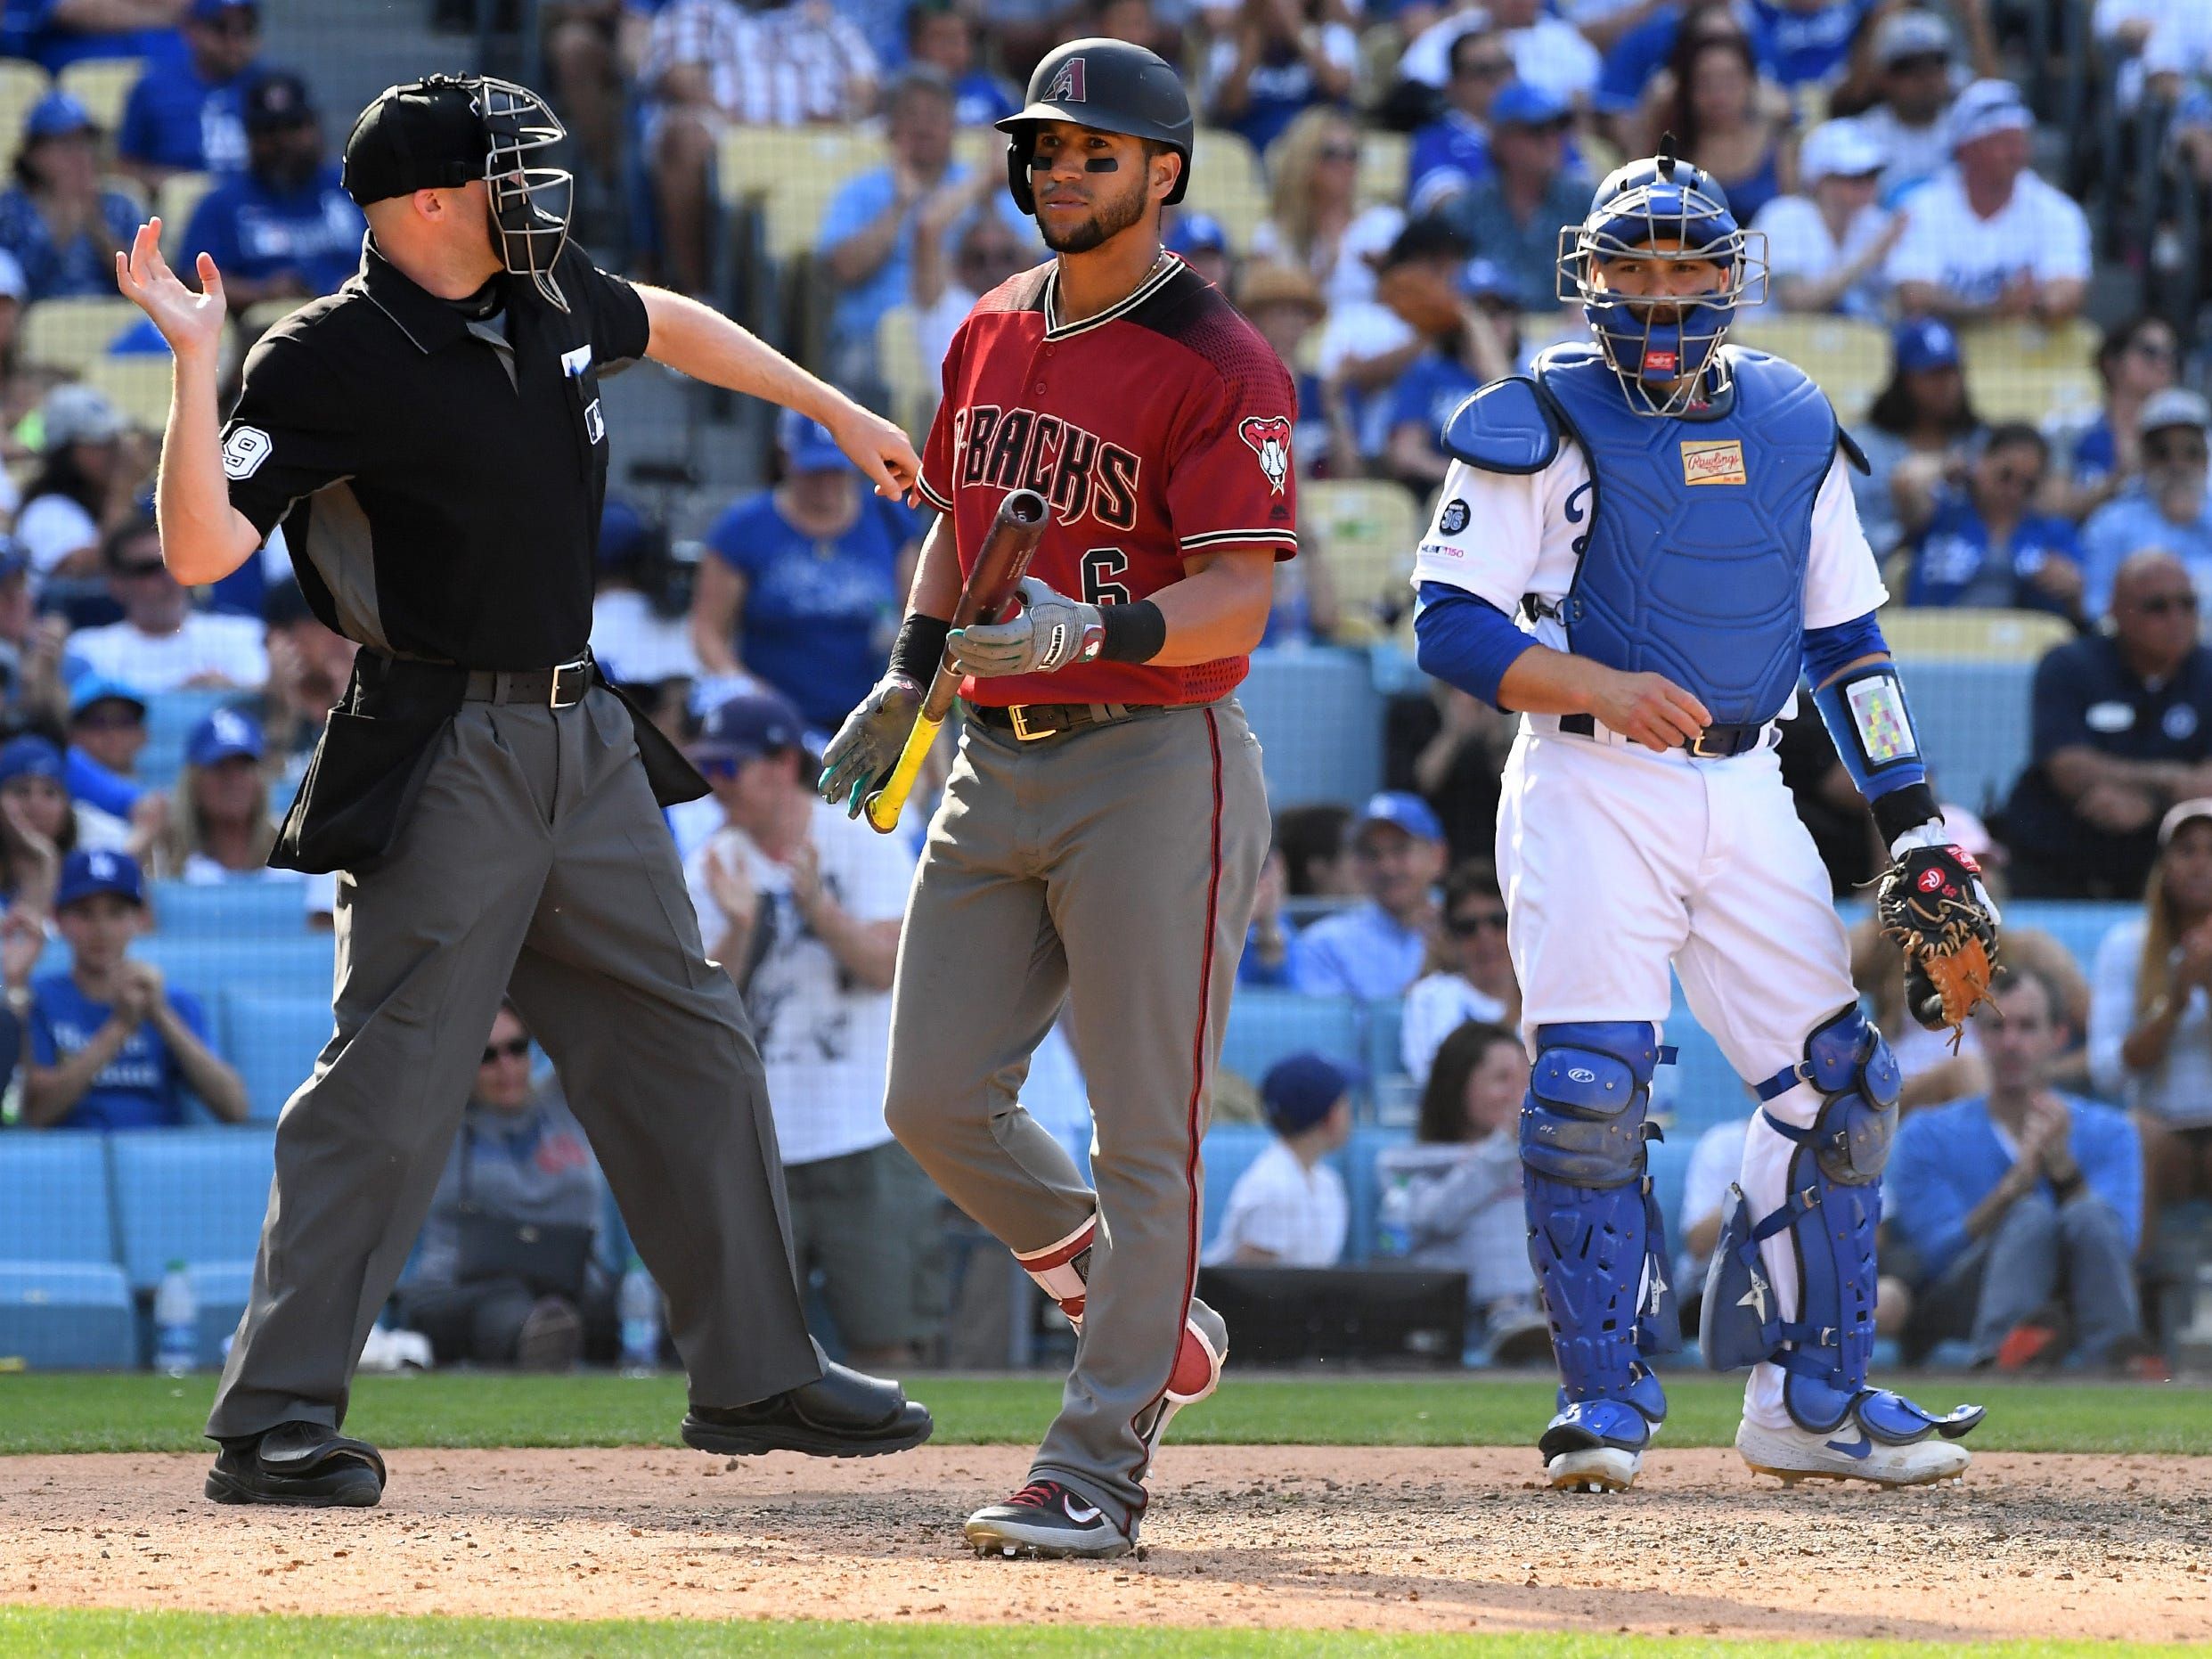 Mar 31, 2019; Los Angeles, CA, USA; Los Angeles Dodgers catcher Russell Martin (55) looks on as home plate umpire Nic Lentz (59) calls Arizona Diamondback left fielder David Peralta (6) out on strikes in the ninth inning of the game at Dodger Stadium.